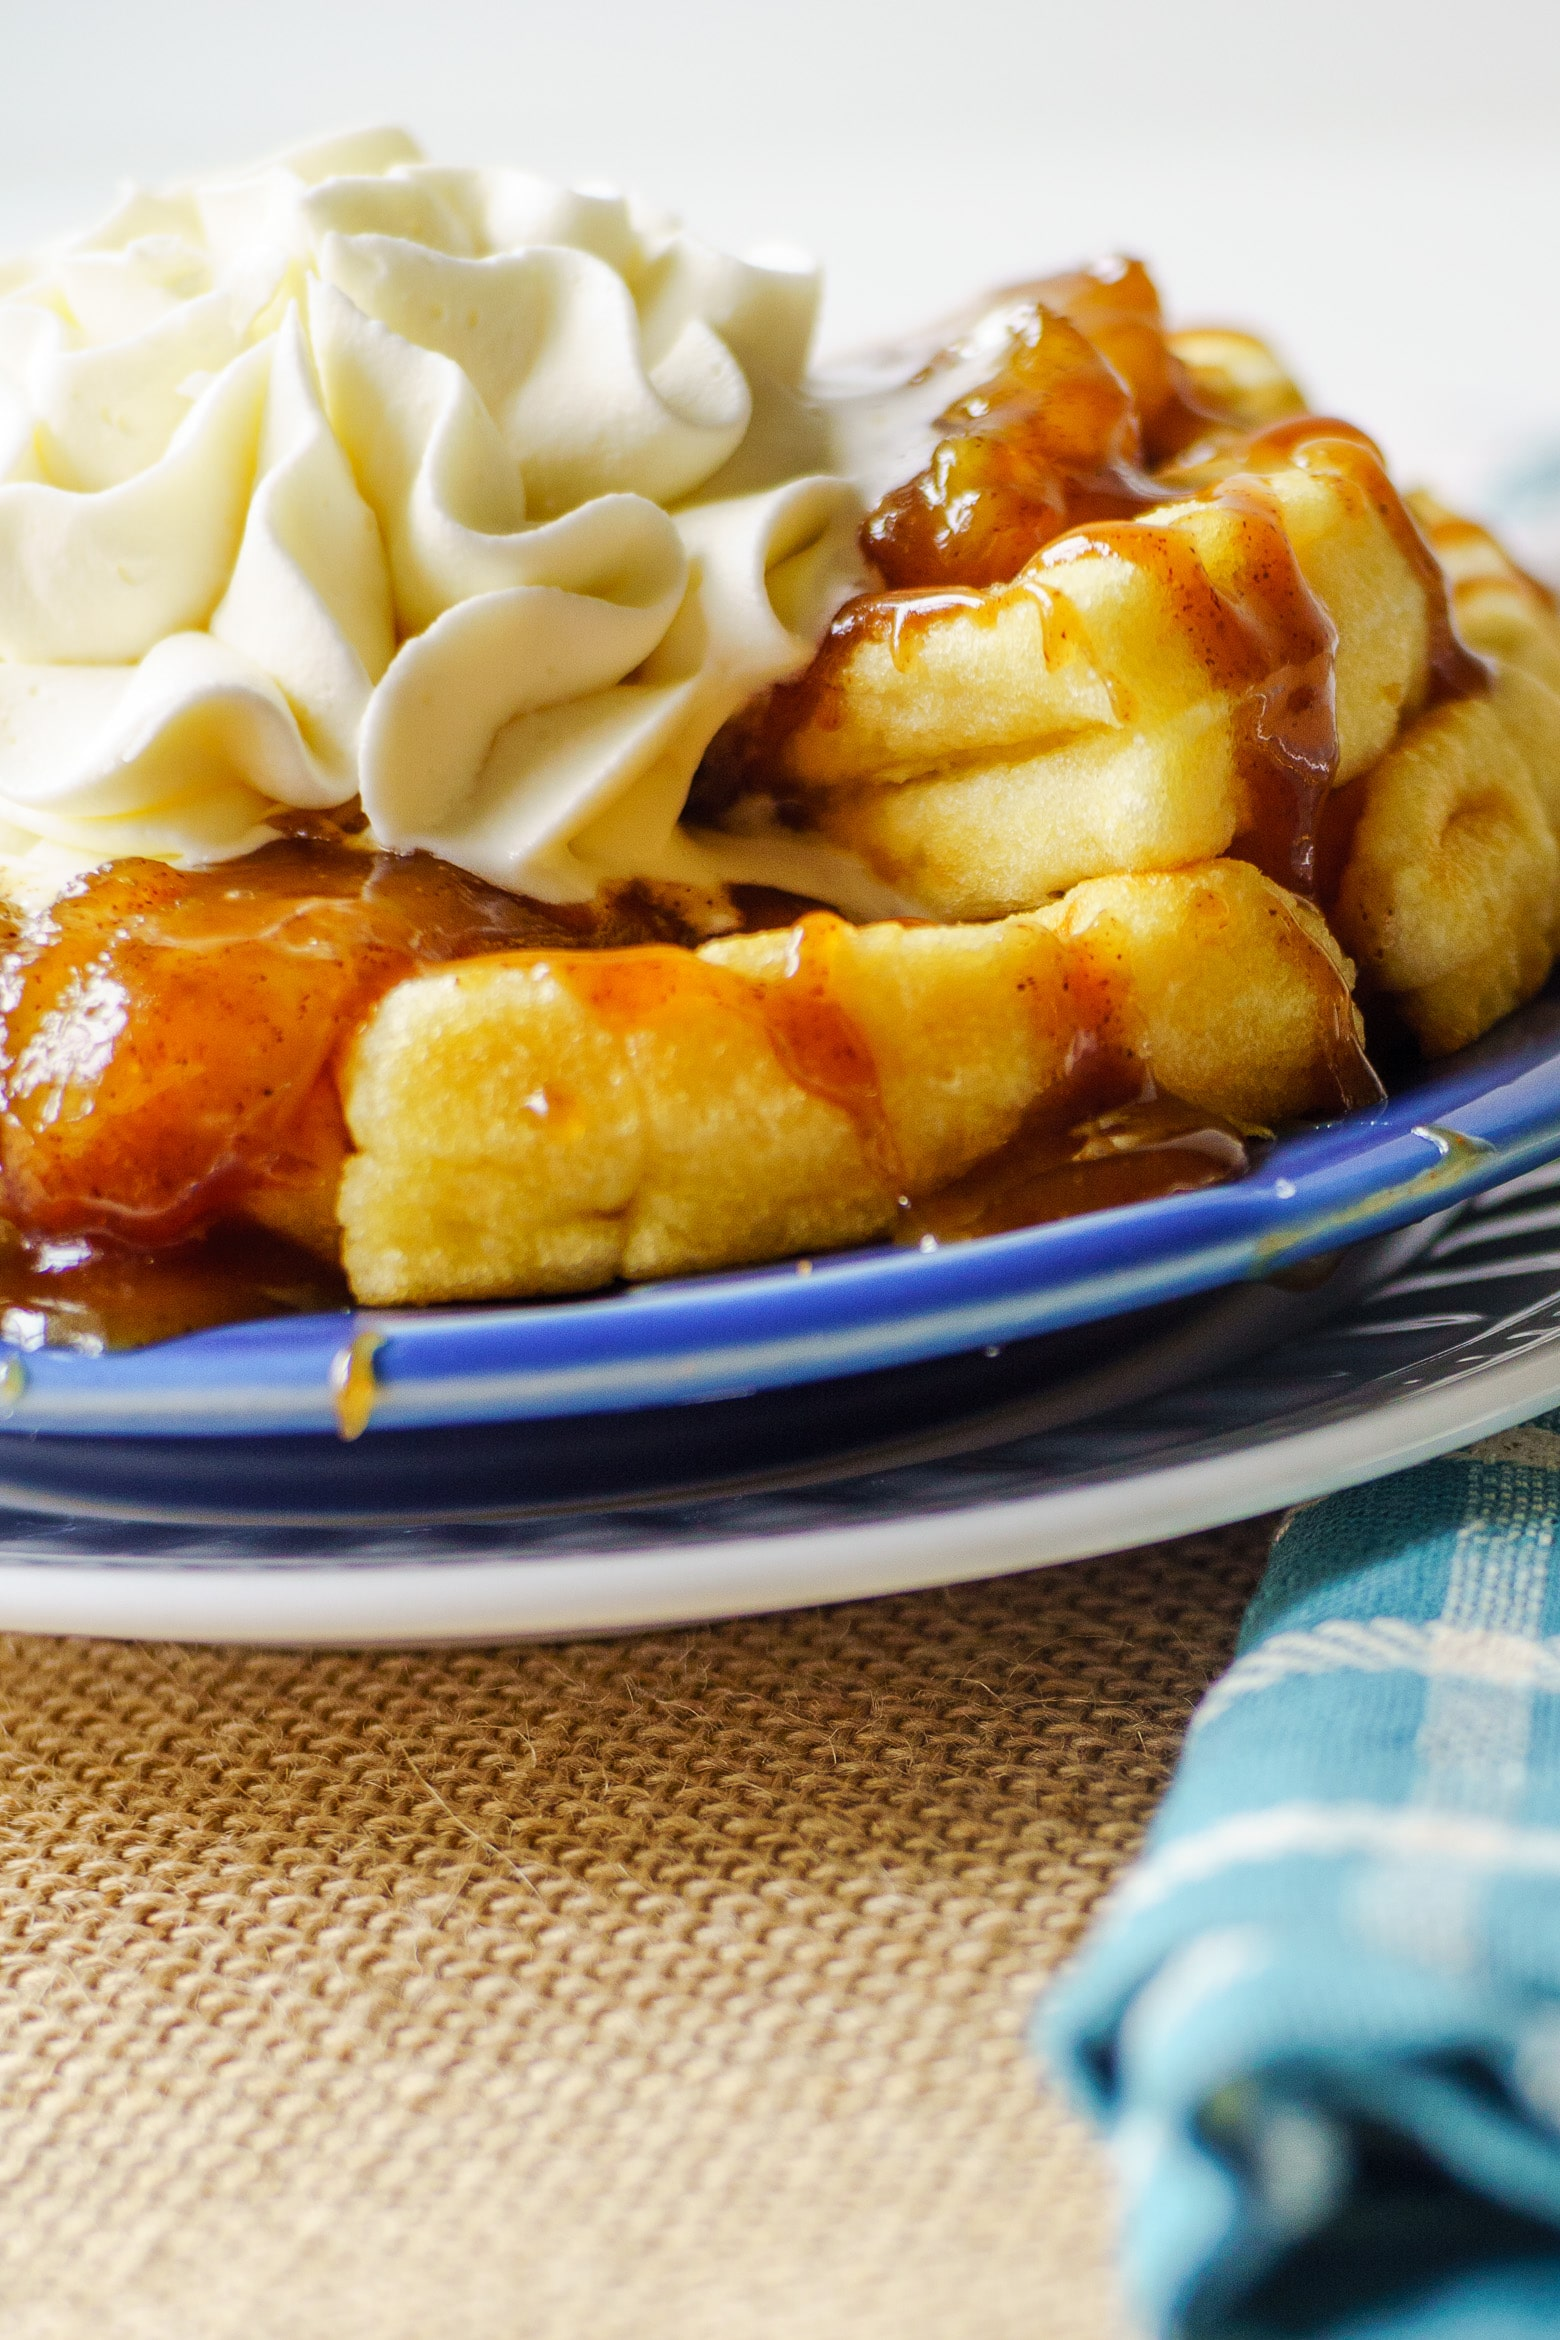 Caramelizing bananas is easy and only requires 3 other ingredients.